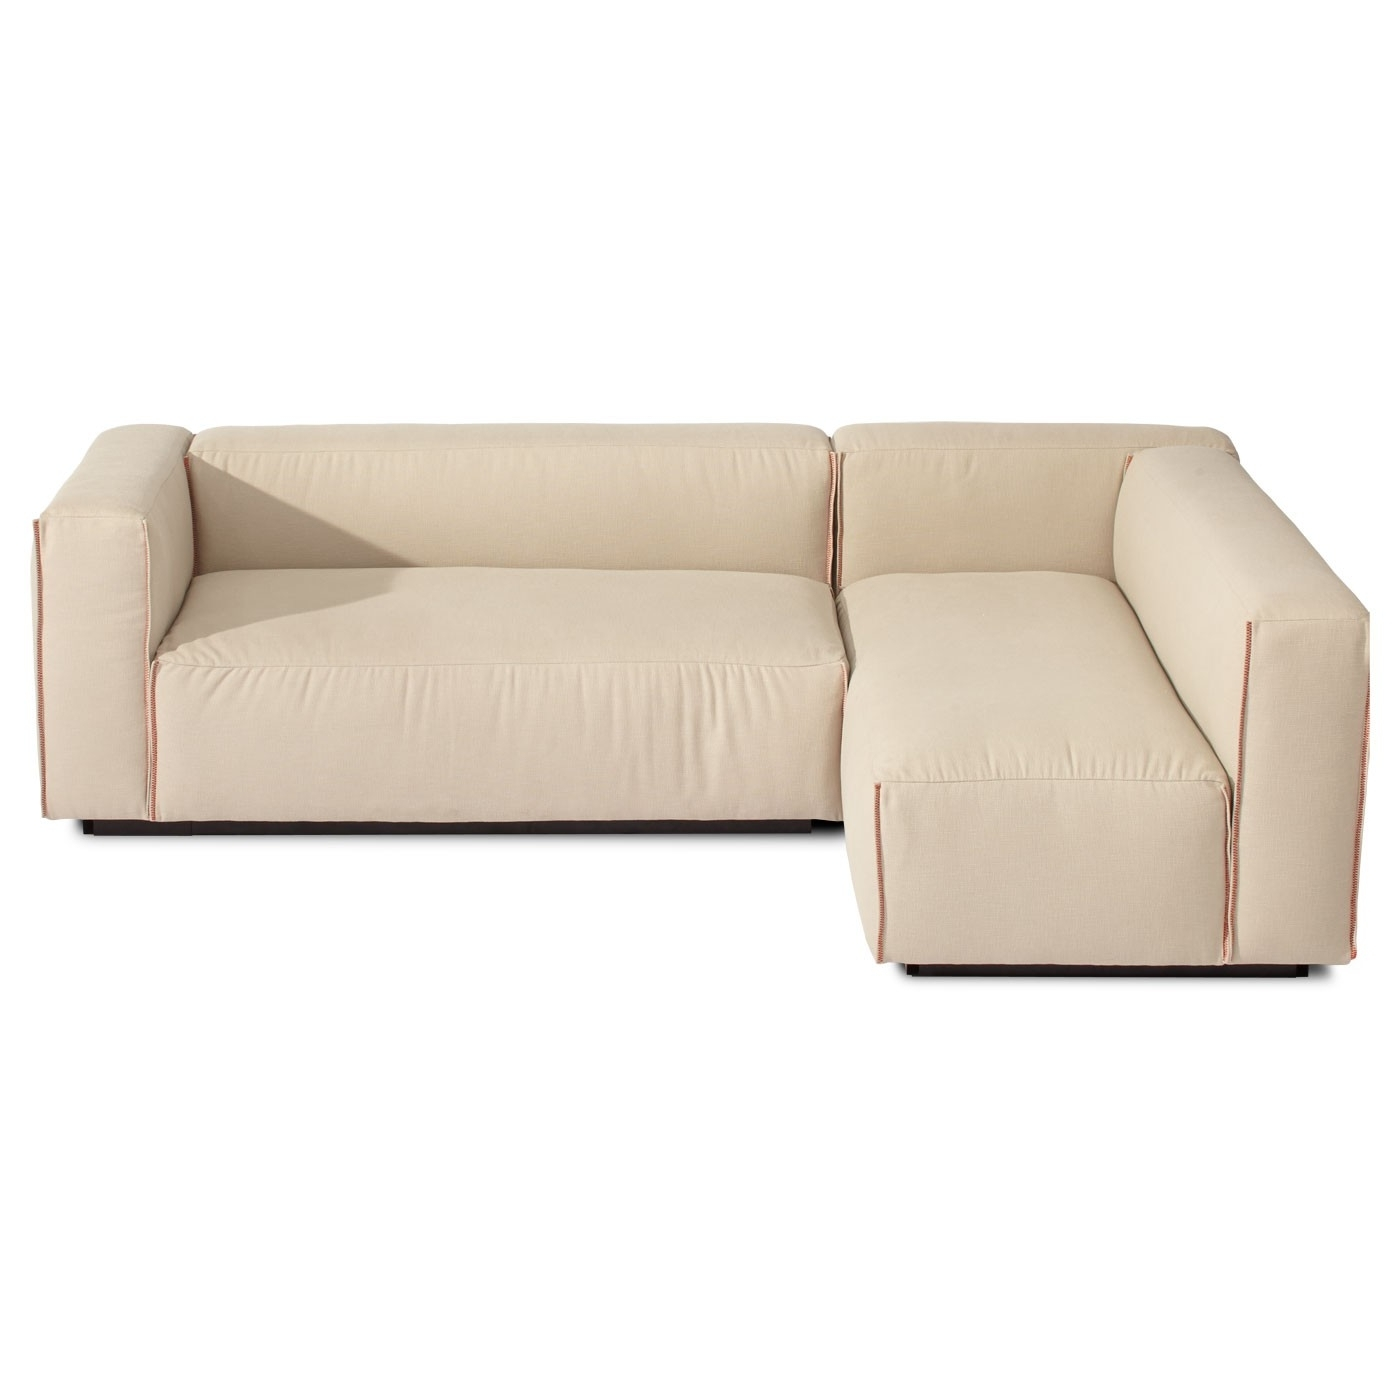 Well Known Armless Sectional Sofas With Regard To Sectional Sofa Design: Elegant Small Modern Sectional Sofa (View 5 of 20)